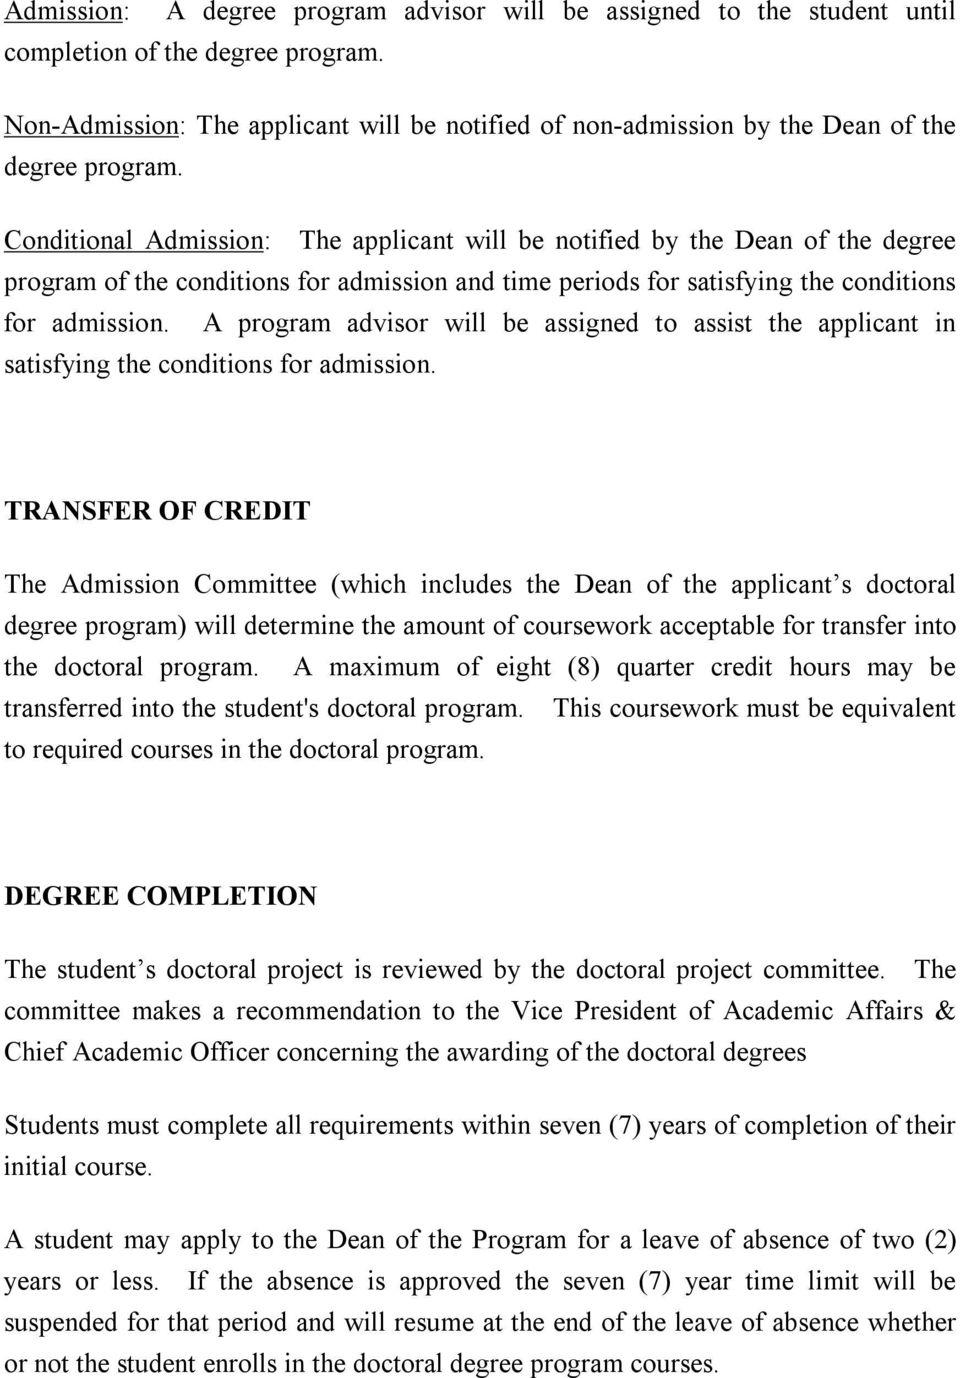 Conditional Admission: The applicant will be notified by the Dean of the degree program of the conditions for admission and time periods for satisfying the conditions for admission.